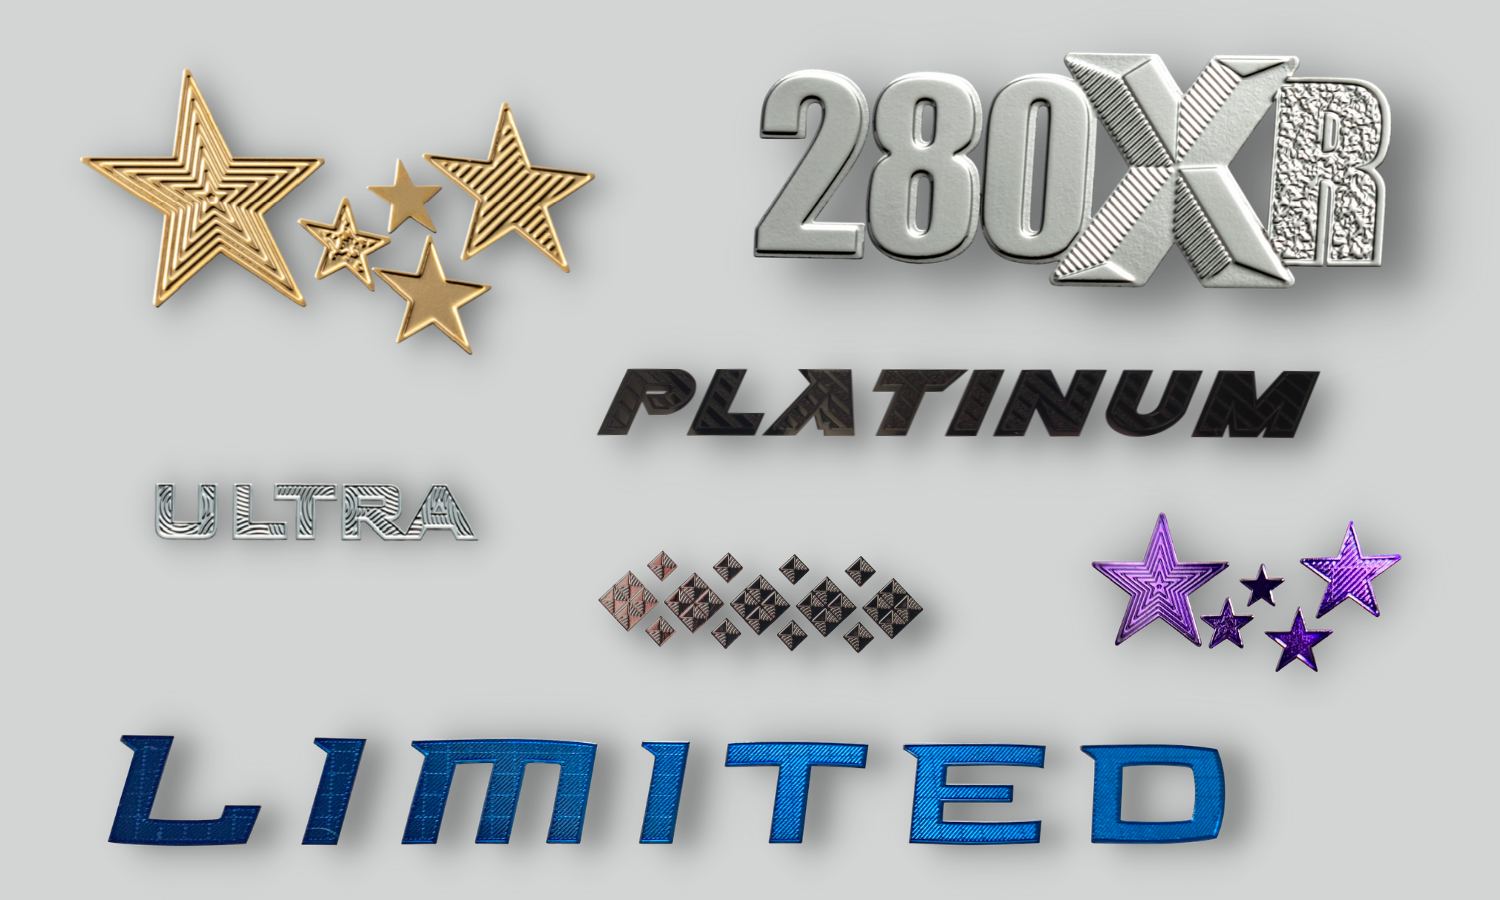 gold lined stars, chrome 280XR with polished and diamond milled letters, black platinum text, chrome ultra text with swirled design inside letters, purple stars, blue limited text with diamond milled letters